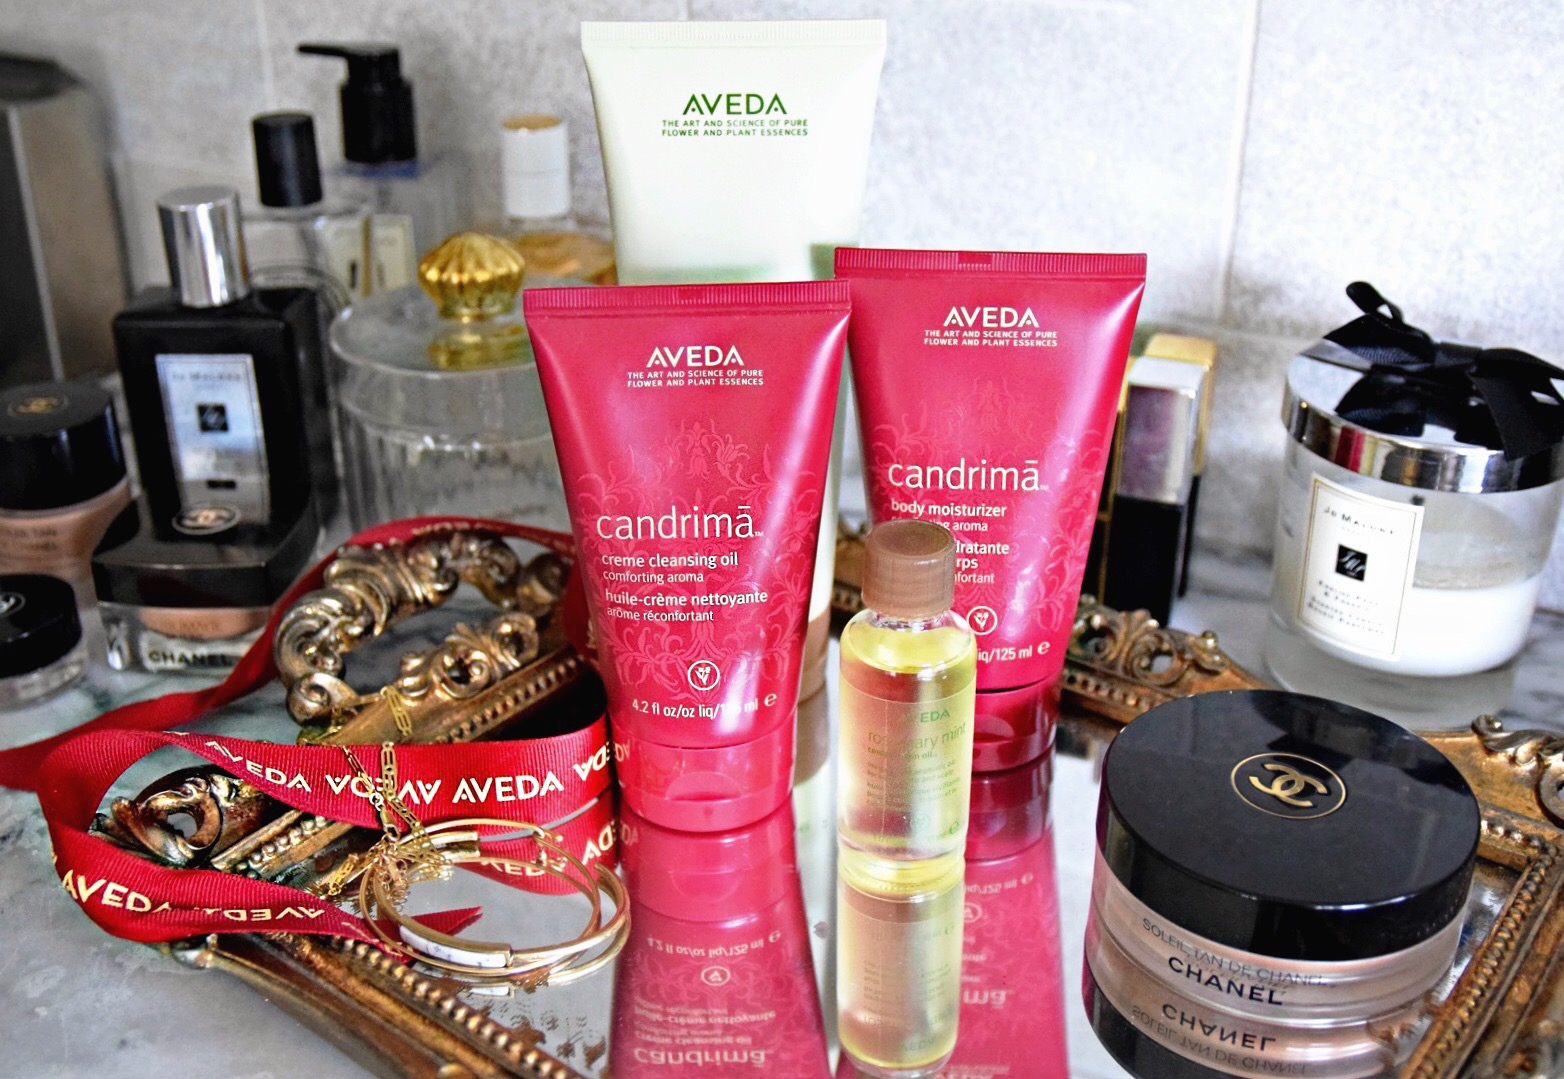 All I Want Is Aveda // Aveda Candrima & Rosemary Bath and Body Products // Aveda Fall Colors // Aveda Beauty, Makeup and Cosmetics // Beauty Blogger Daphne Blunt: To Style, With Love